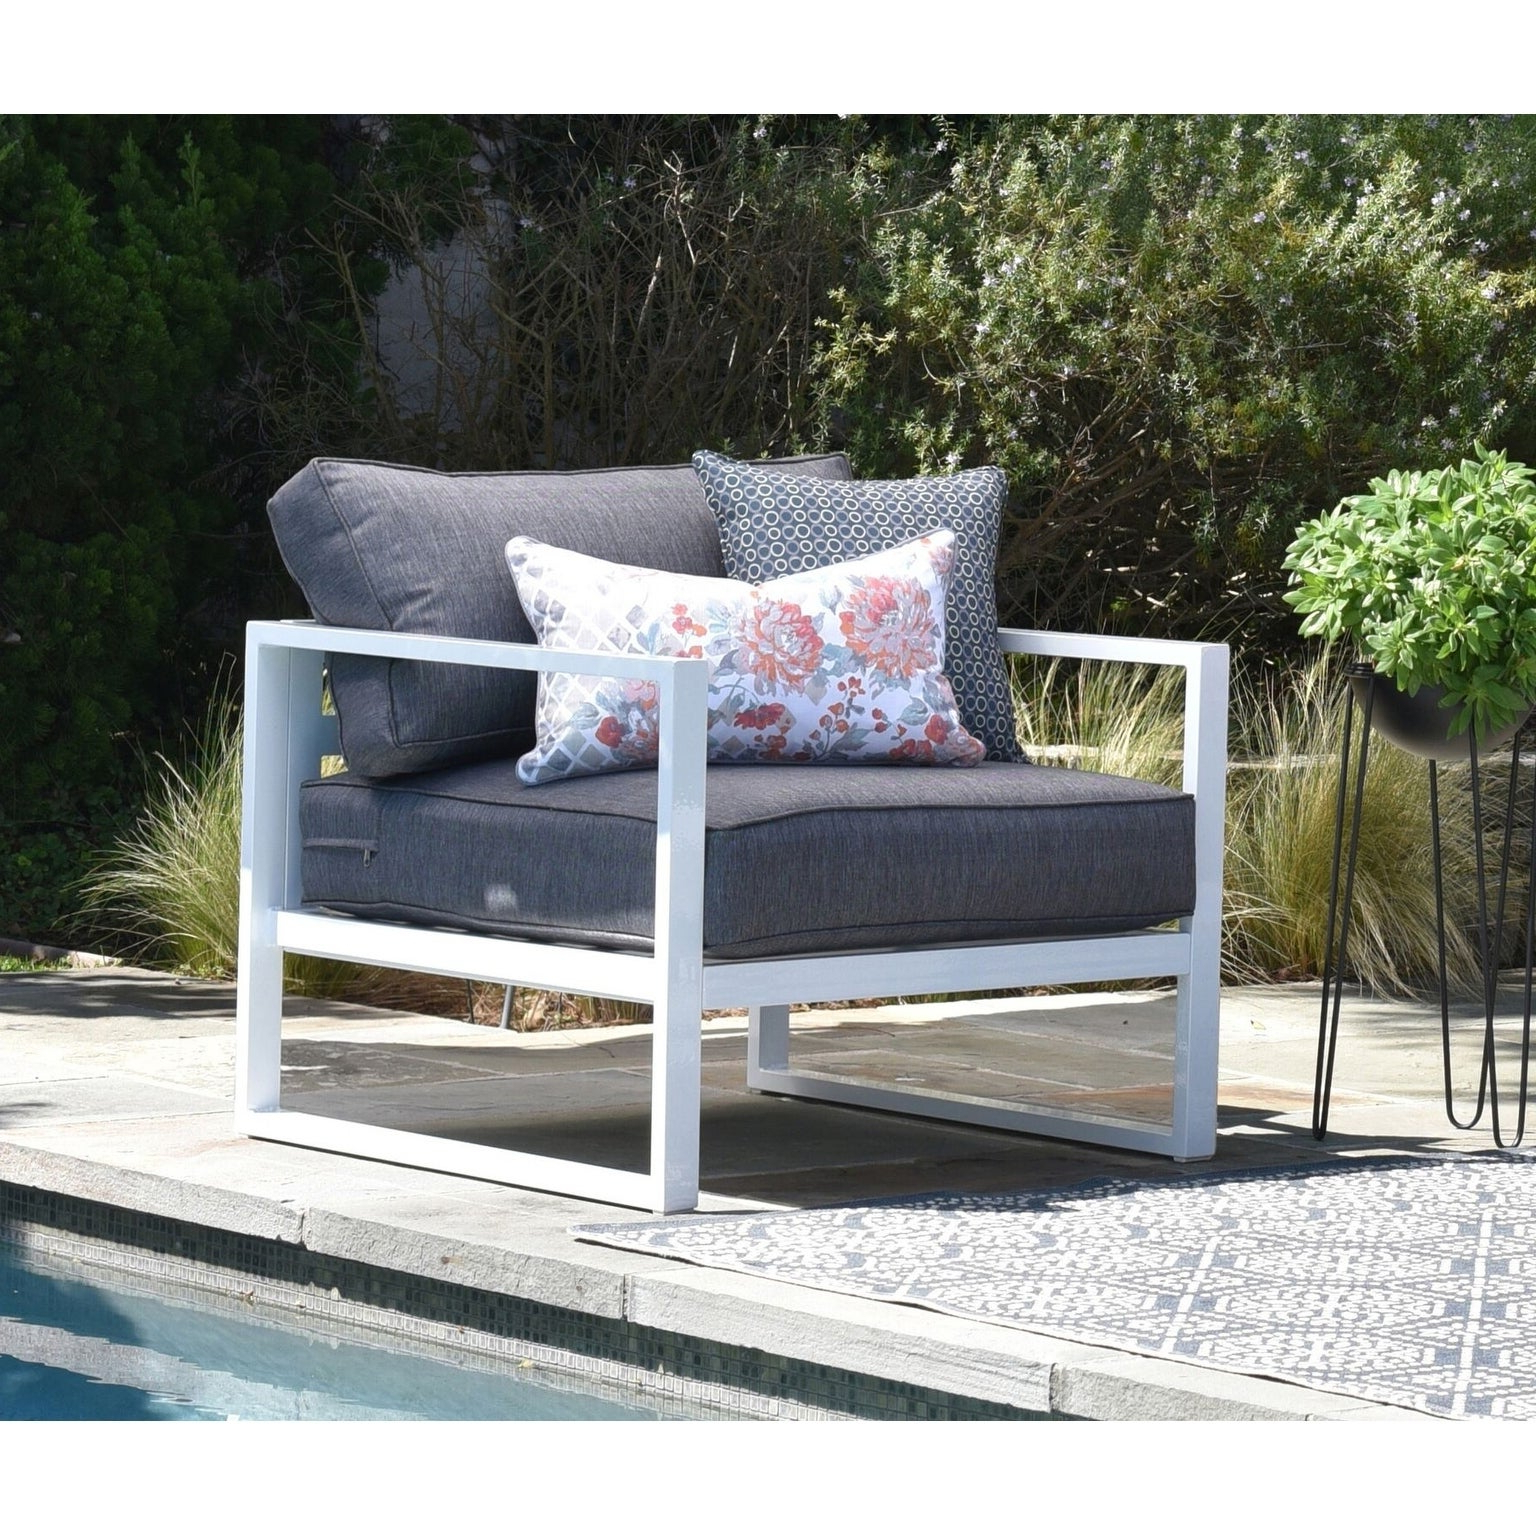 Paloma Sofas With Cushions Regarding Well Known Details About Elle Decor Paloma Outdoor Arm Chair White Single (View 24 of 25)